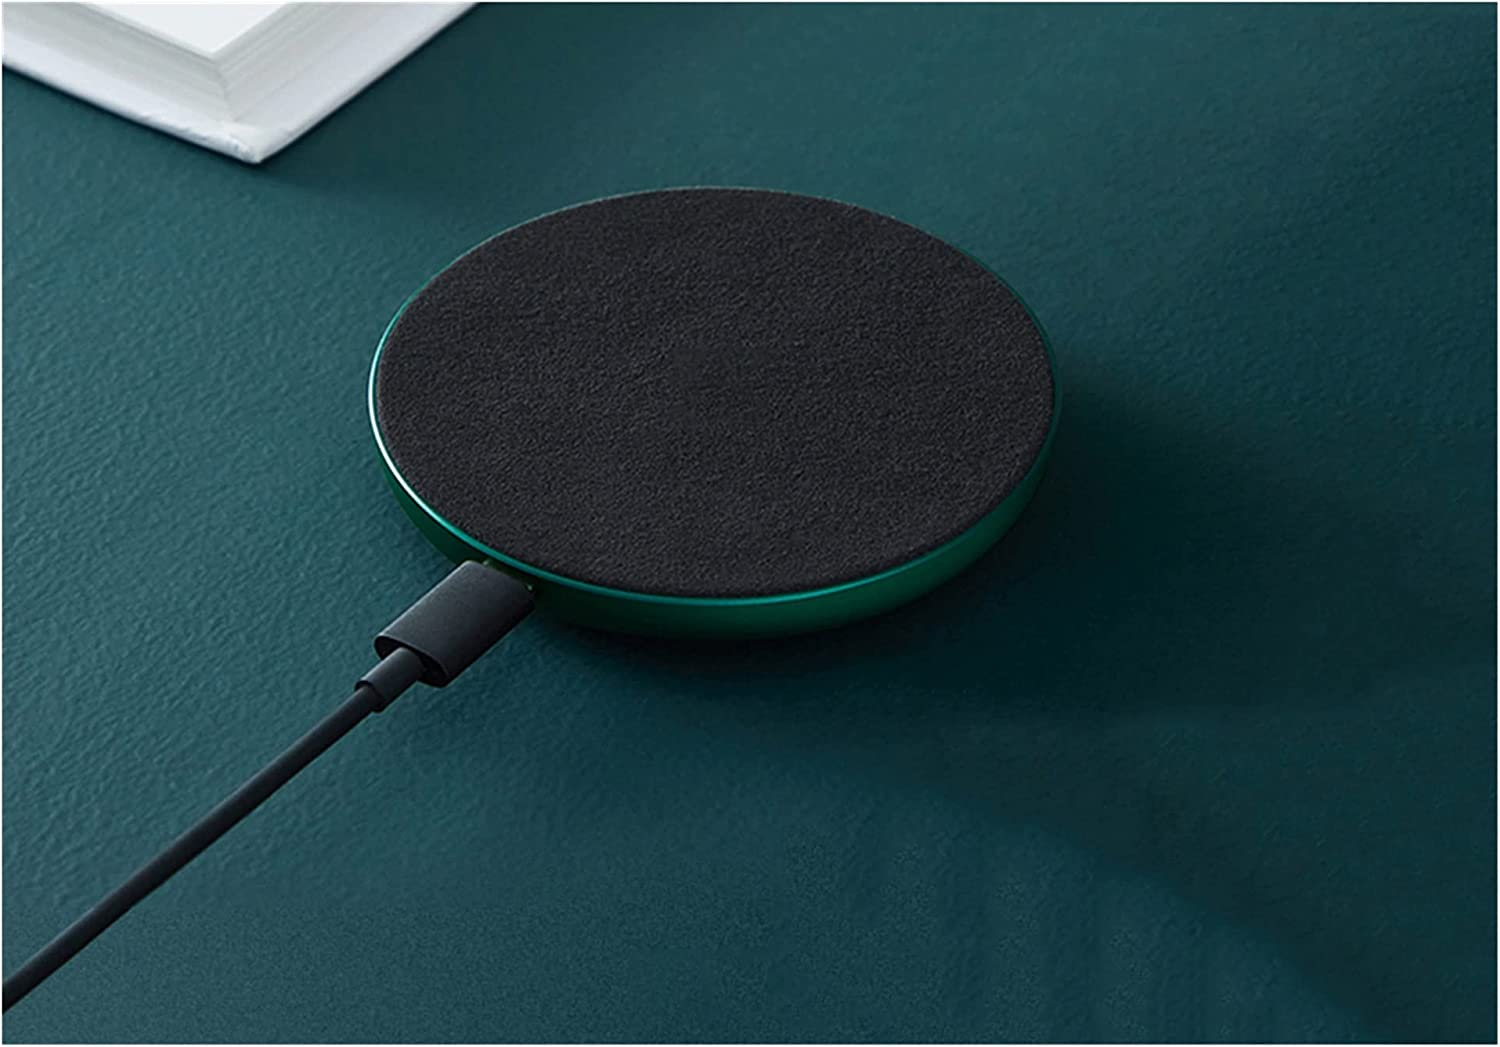 NGLWA Wireless Charger Charging Fast 25% OFF Inventory cleanup selling sale Pad